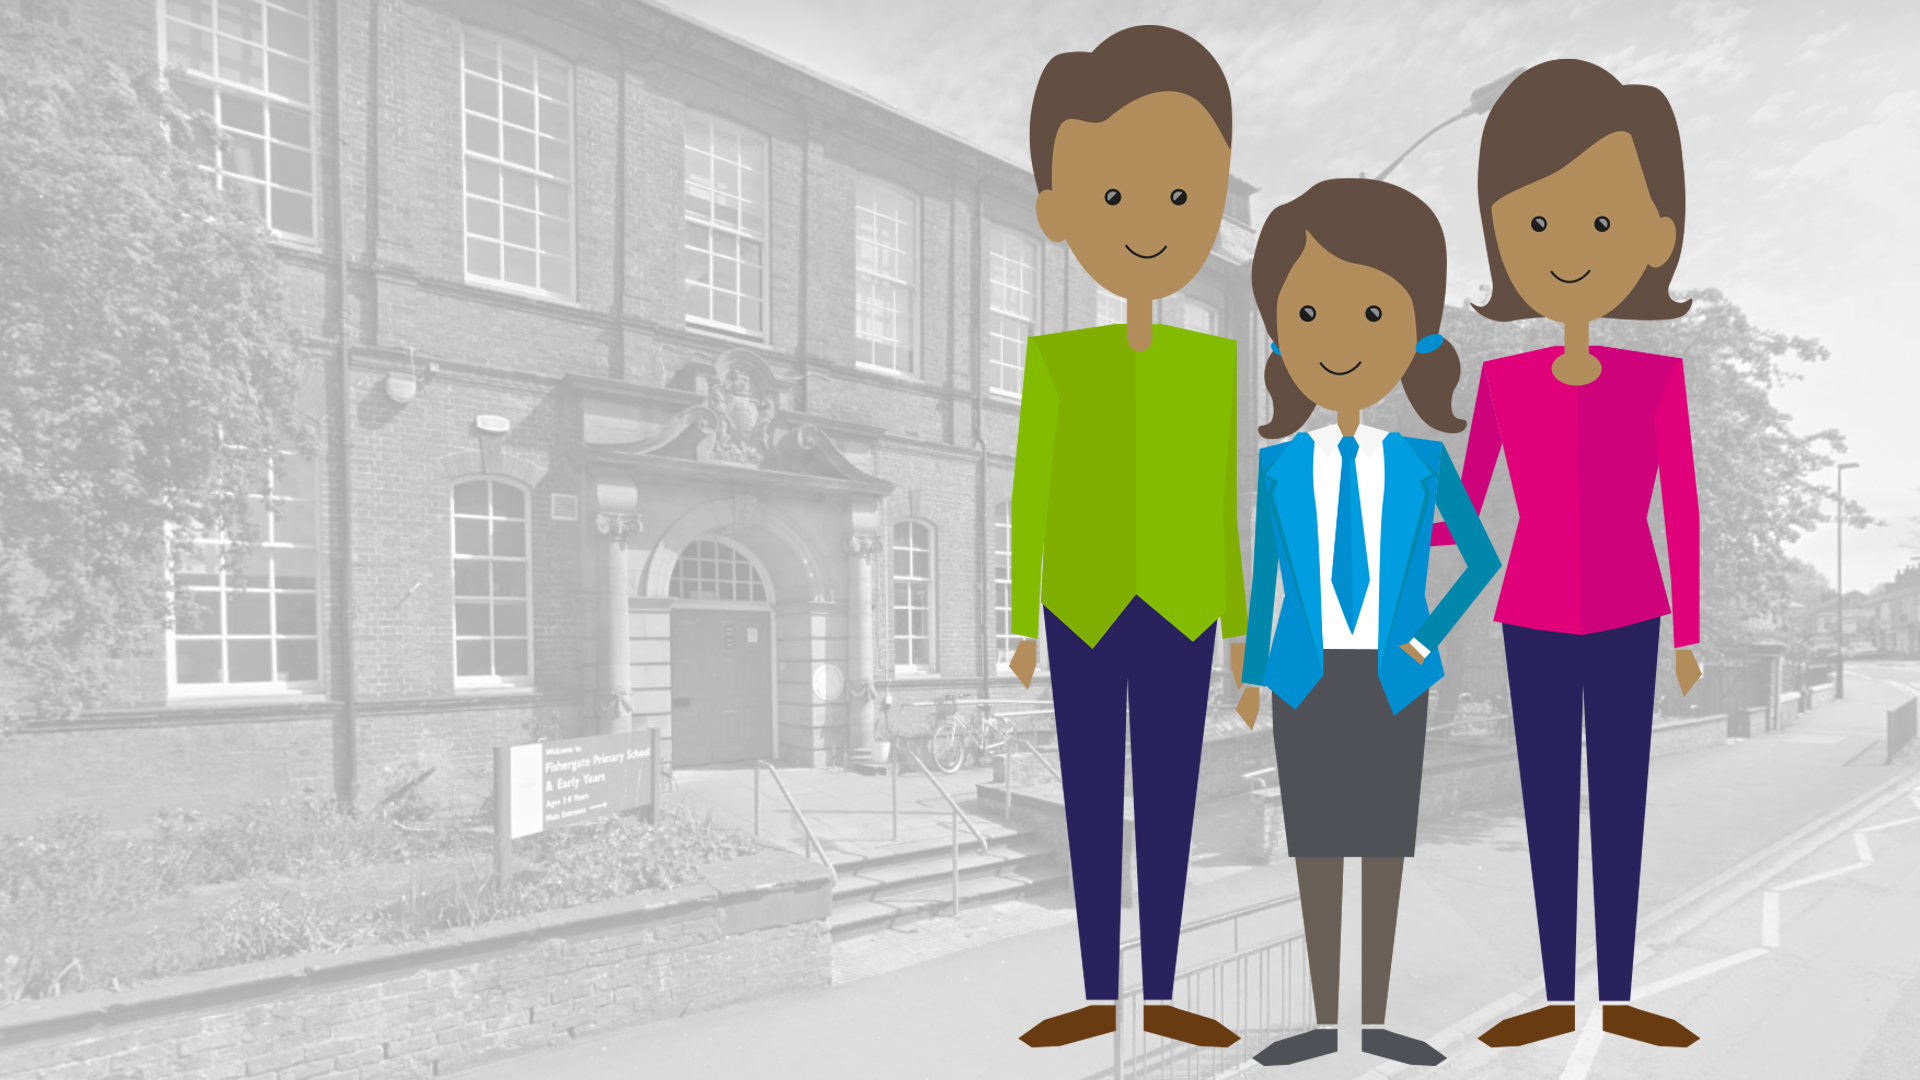 Quantum family and school kid in front of a house